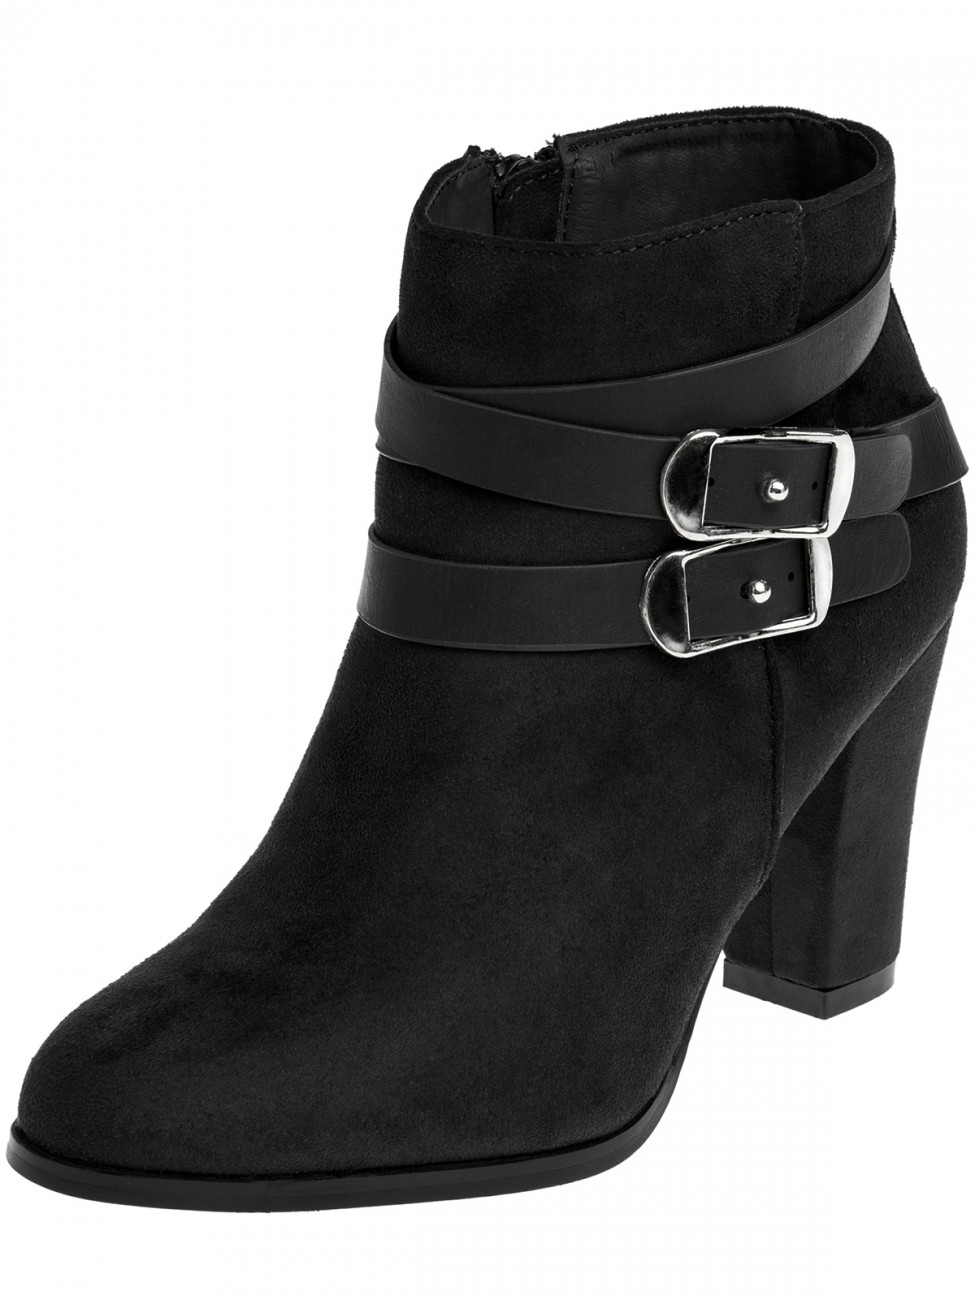 caspar damen ankle boots stiefeletten stiefel schuhe hoher. Black Bedroom Furniture Sets. Home Design Ideas